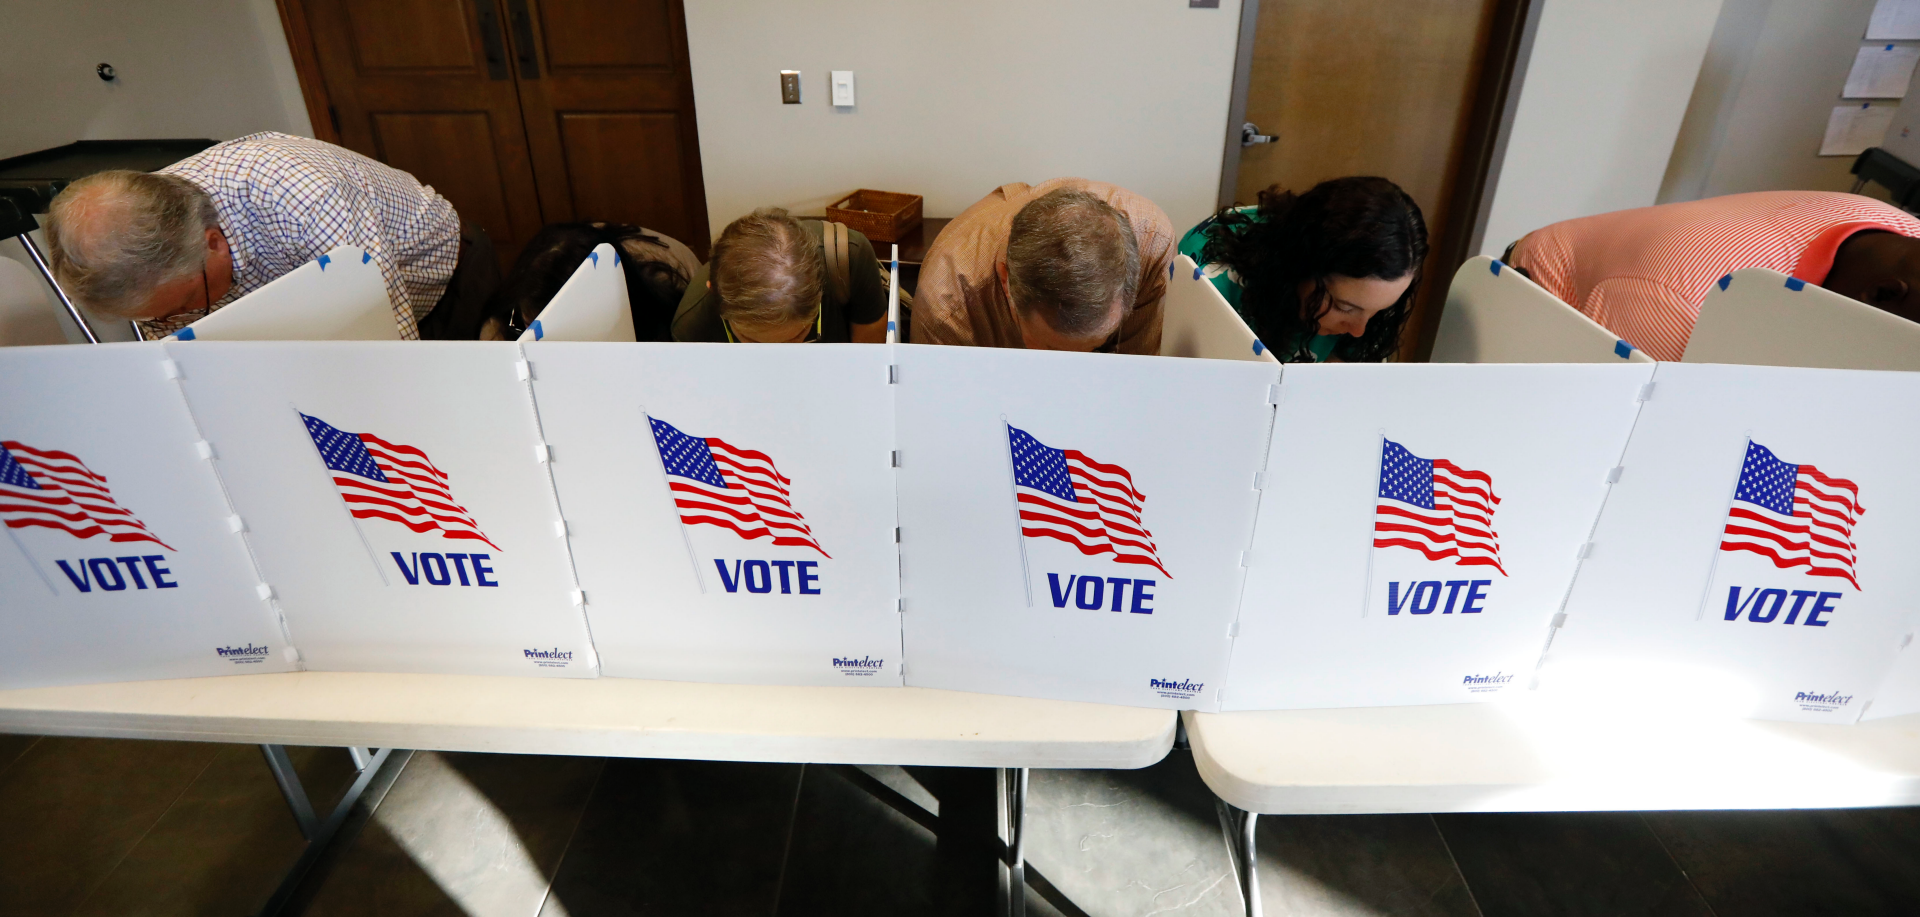 Steve Levy: We can easily prevent election hacking by Russia or anyone else – Here's how